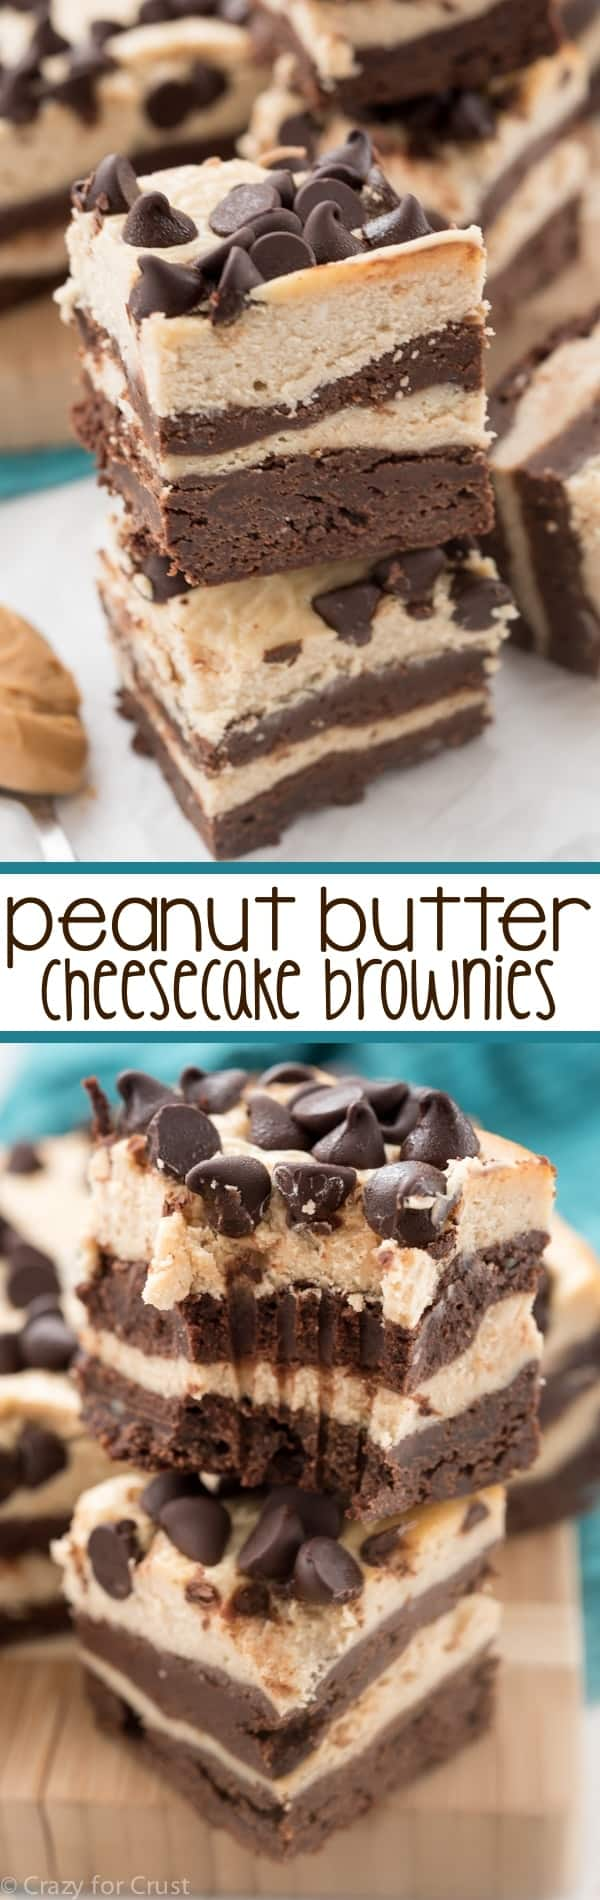 Layer Peanut Butter Cheesecake Brownies - this EPIC dessert is ...